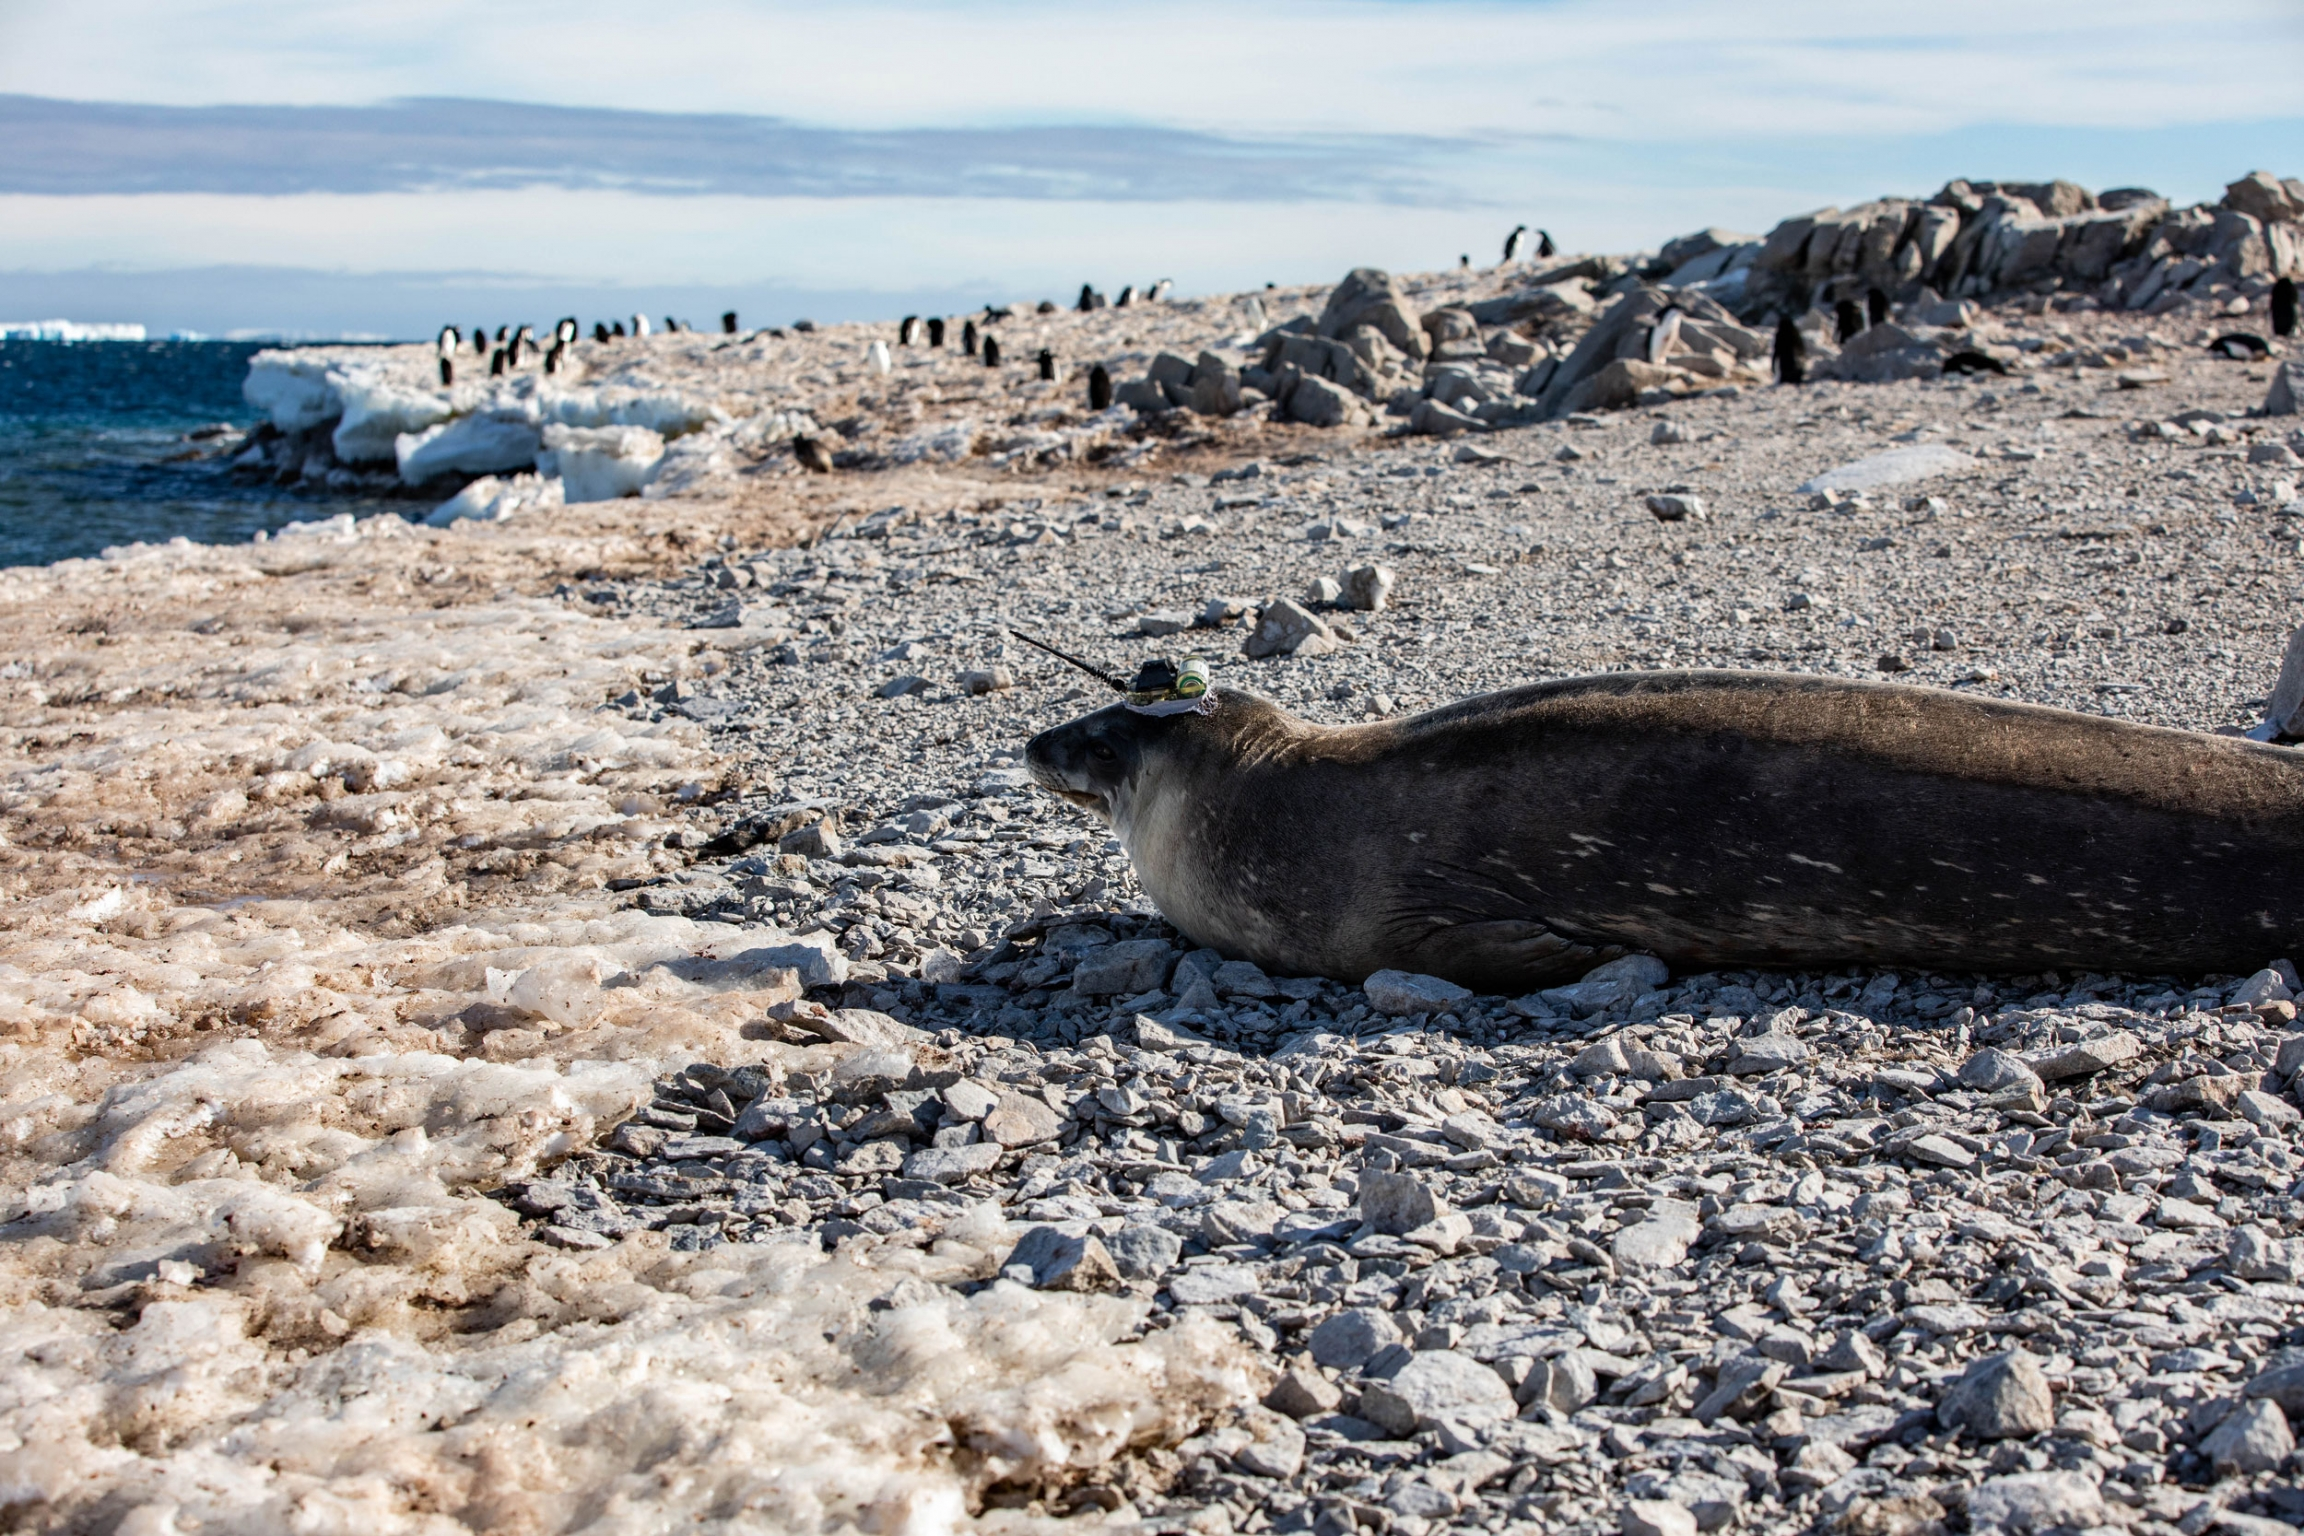 A seal rests on a rocky beach. It has a transponder on its head.